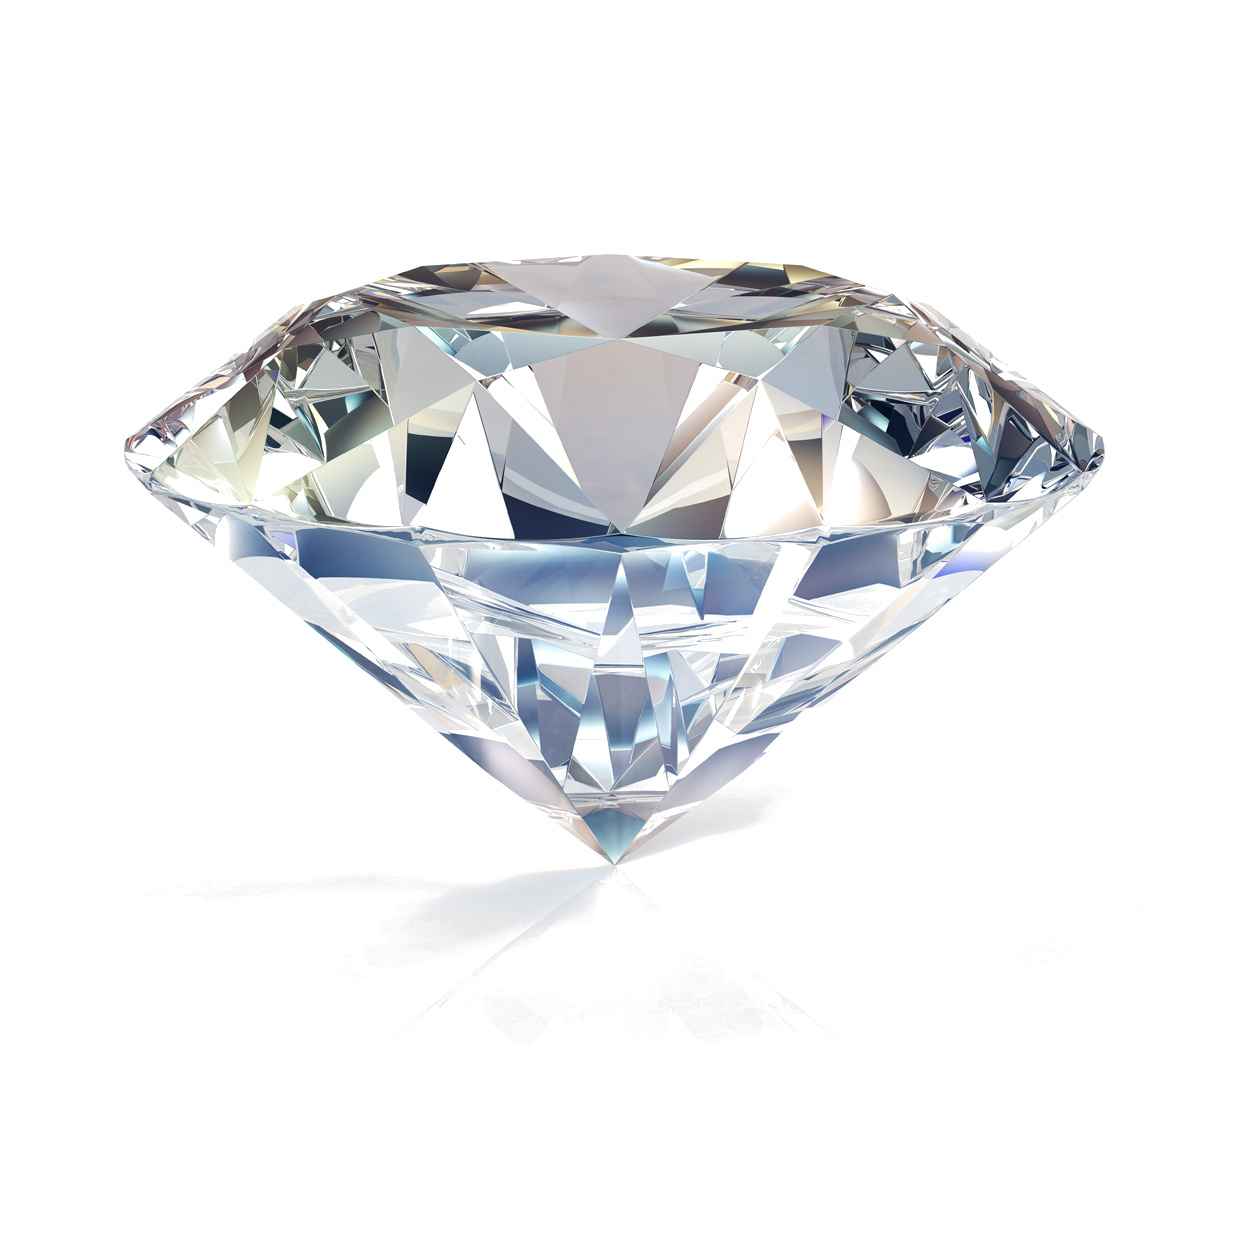 Images free download image. Diamond png vector